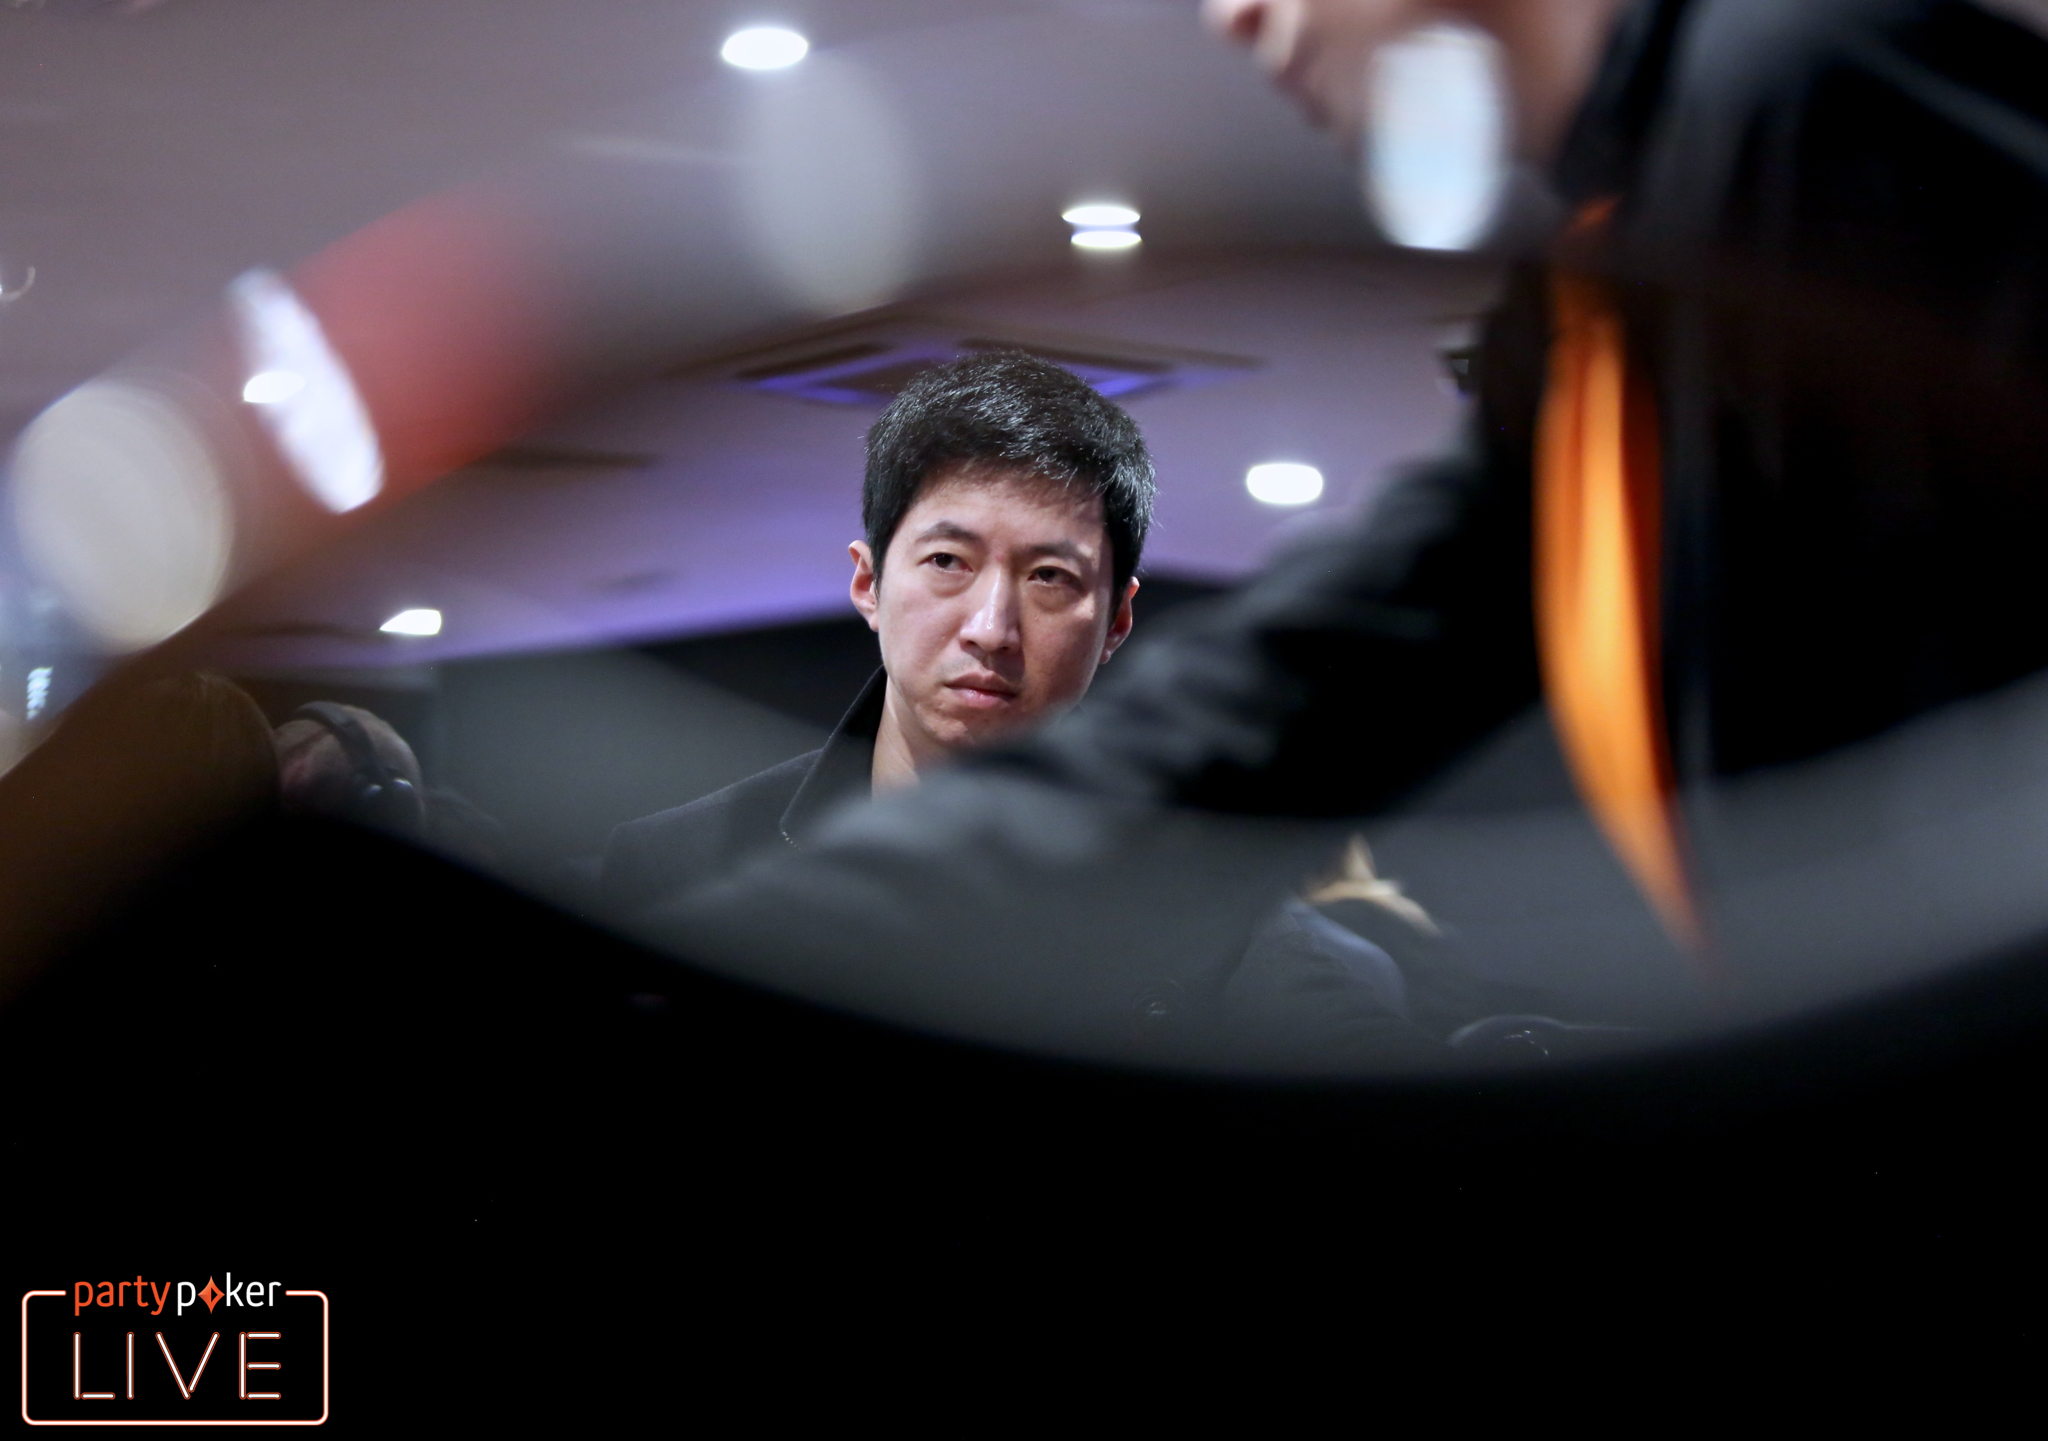 Weijie 'Jervi' Zheng (photo: Mickey May/partypoker)